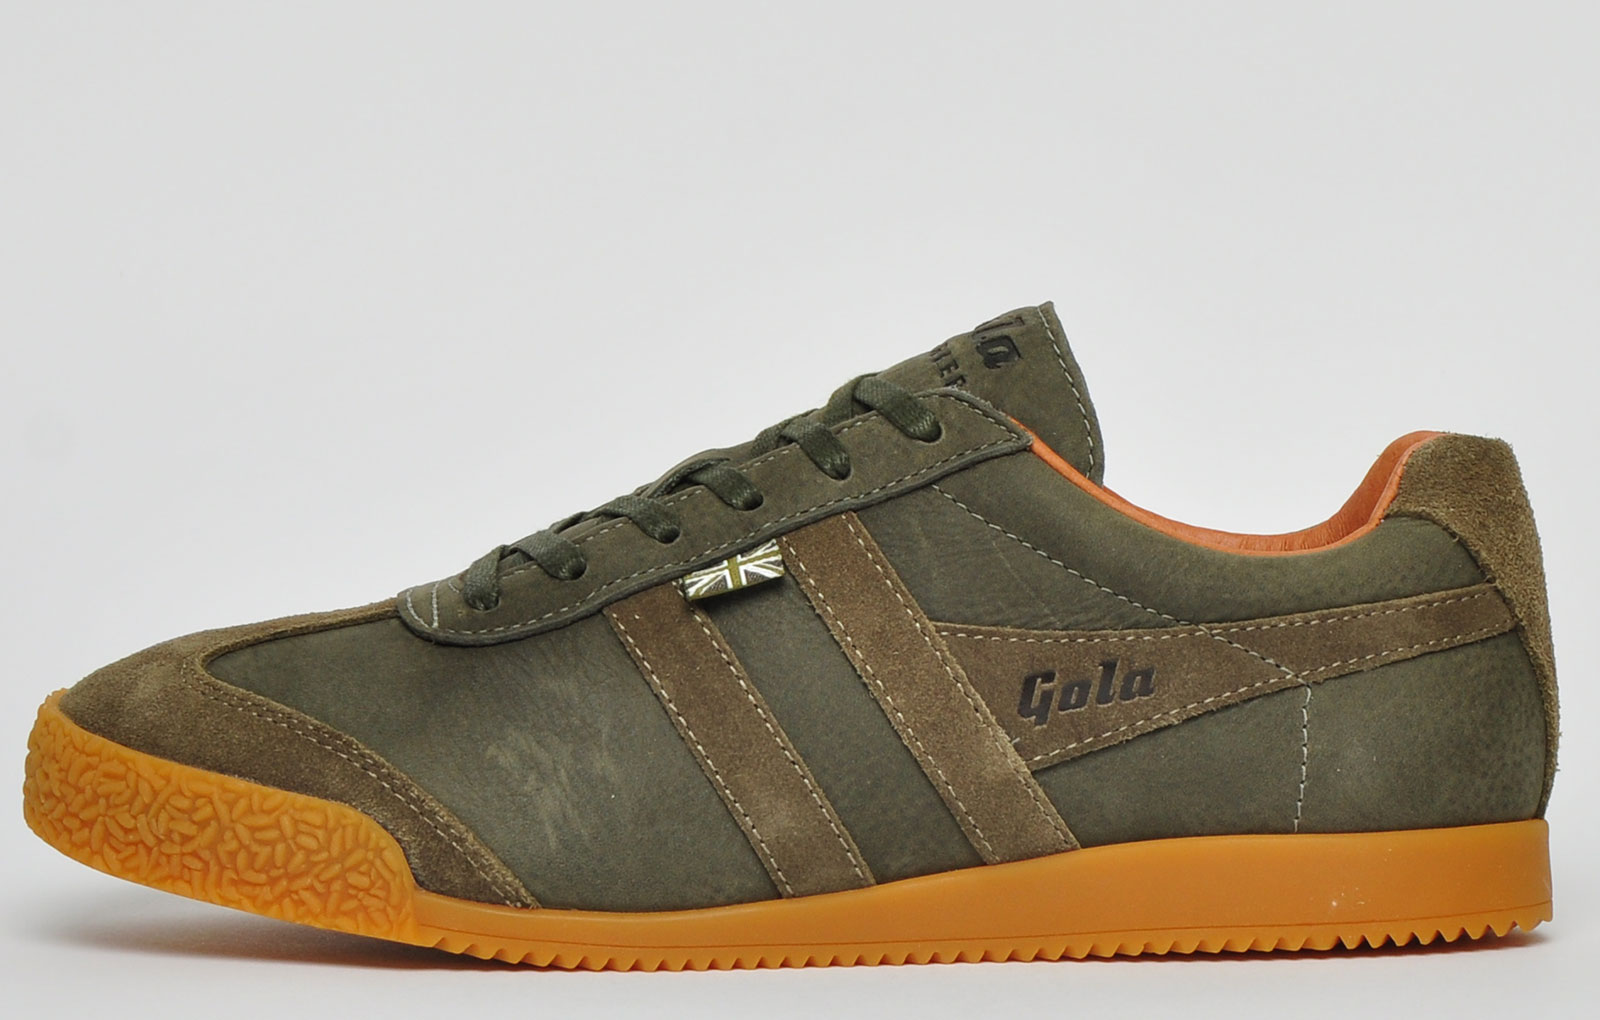 Gola Classics Harrier 634 Made In